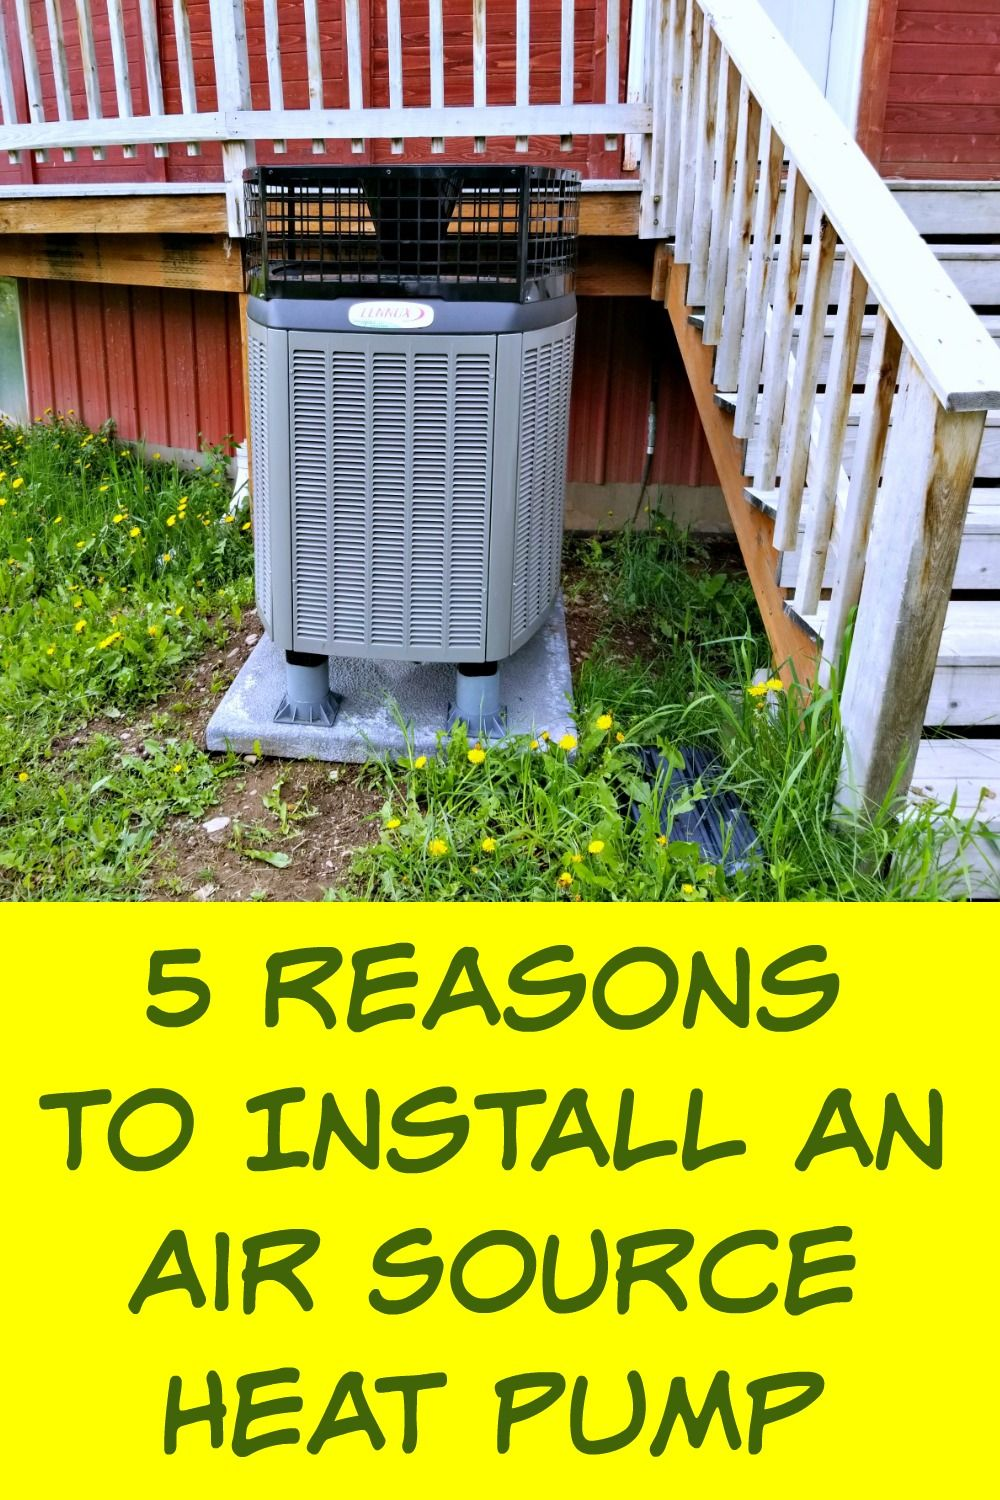 5 Reasons To Install An Air Source Heat Pump In 2020 Heat Pump